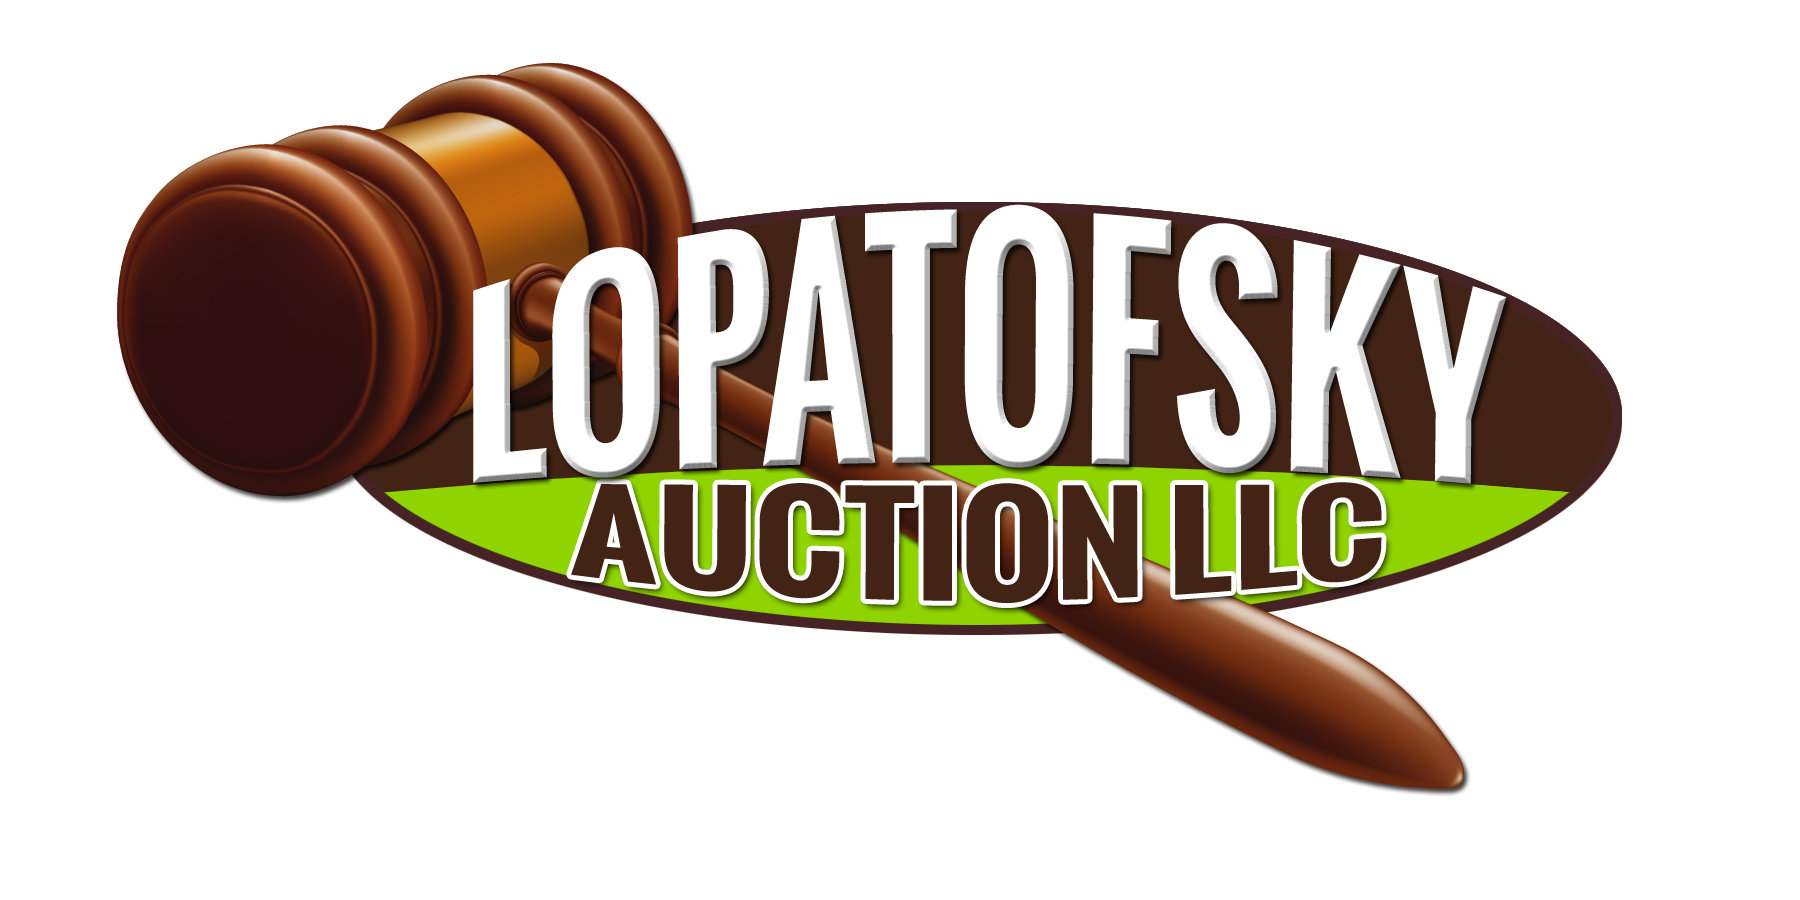 Lopatofsky Auction LLC